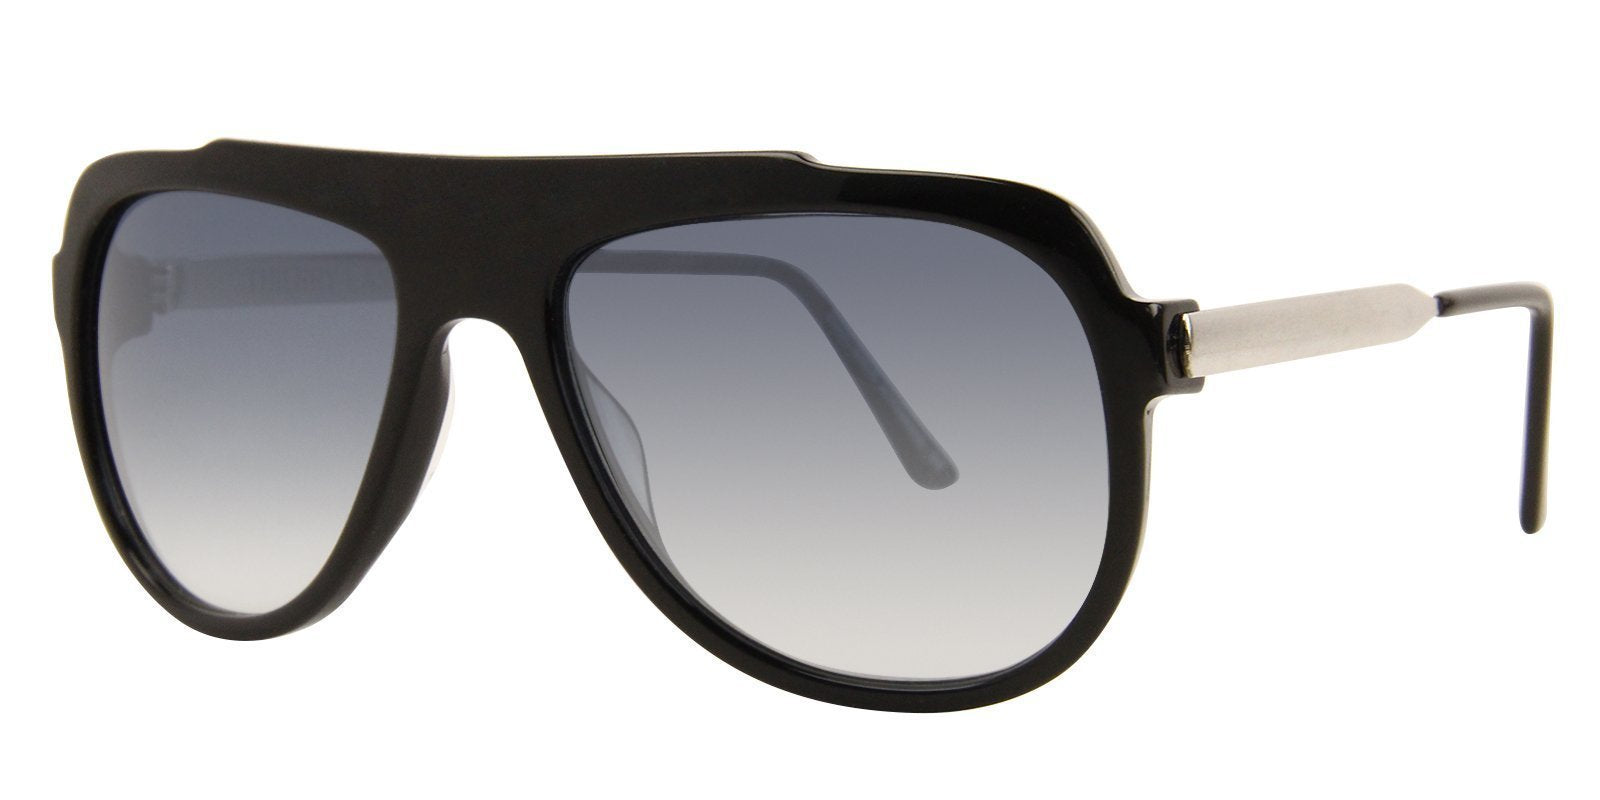 Thierry Lasry - Majesty Black Rectangular Men, Women Sunglasses - 57mm-Sunglasses-Designer Eyes